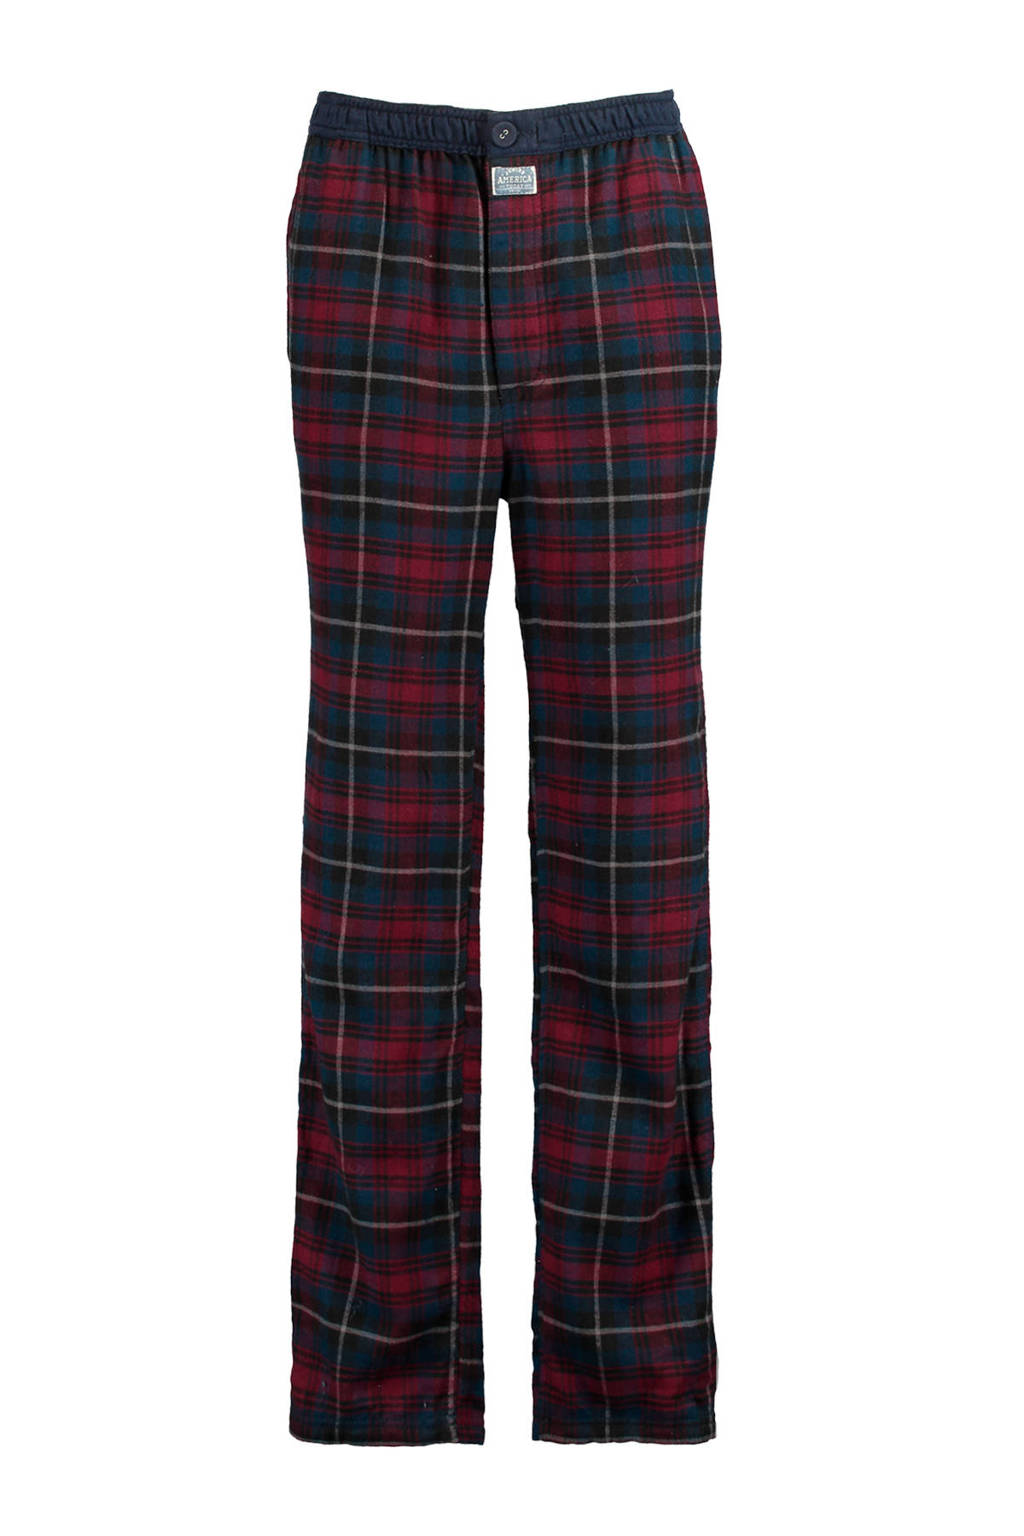 America Today Junior   geruite pyjamabroek Nath rood/blauw, Red/Blue